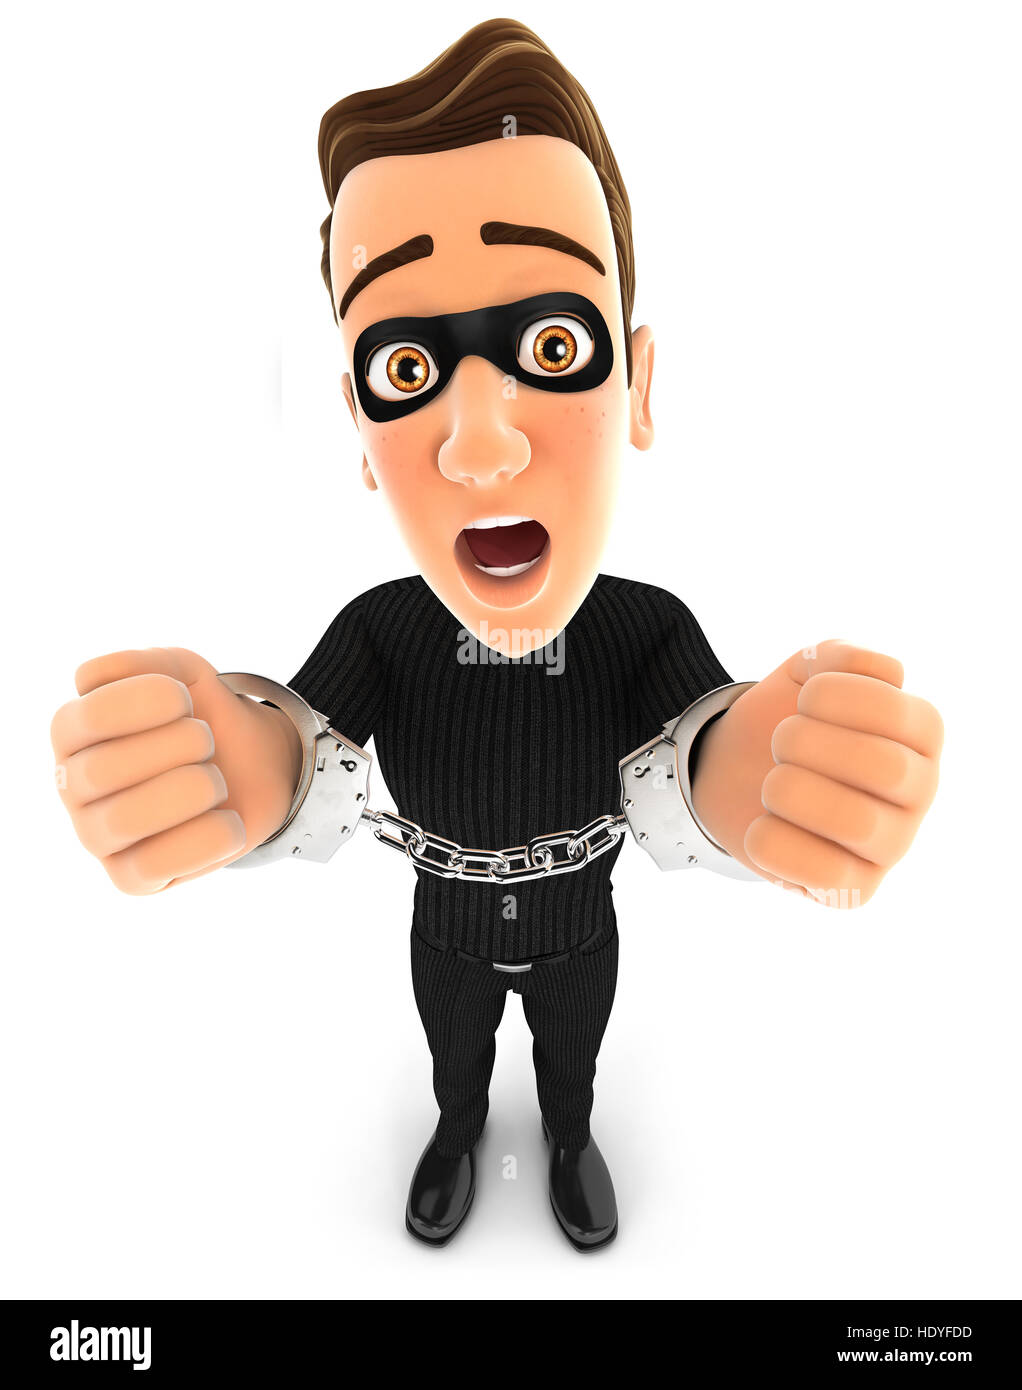 3d thief under arrest and handcuffed, illustration with isolated white background Stock Photo